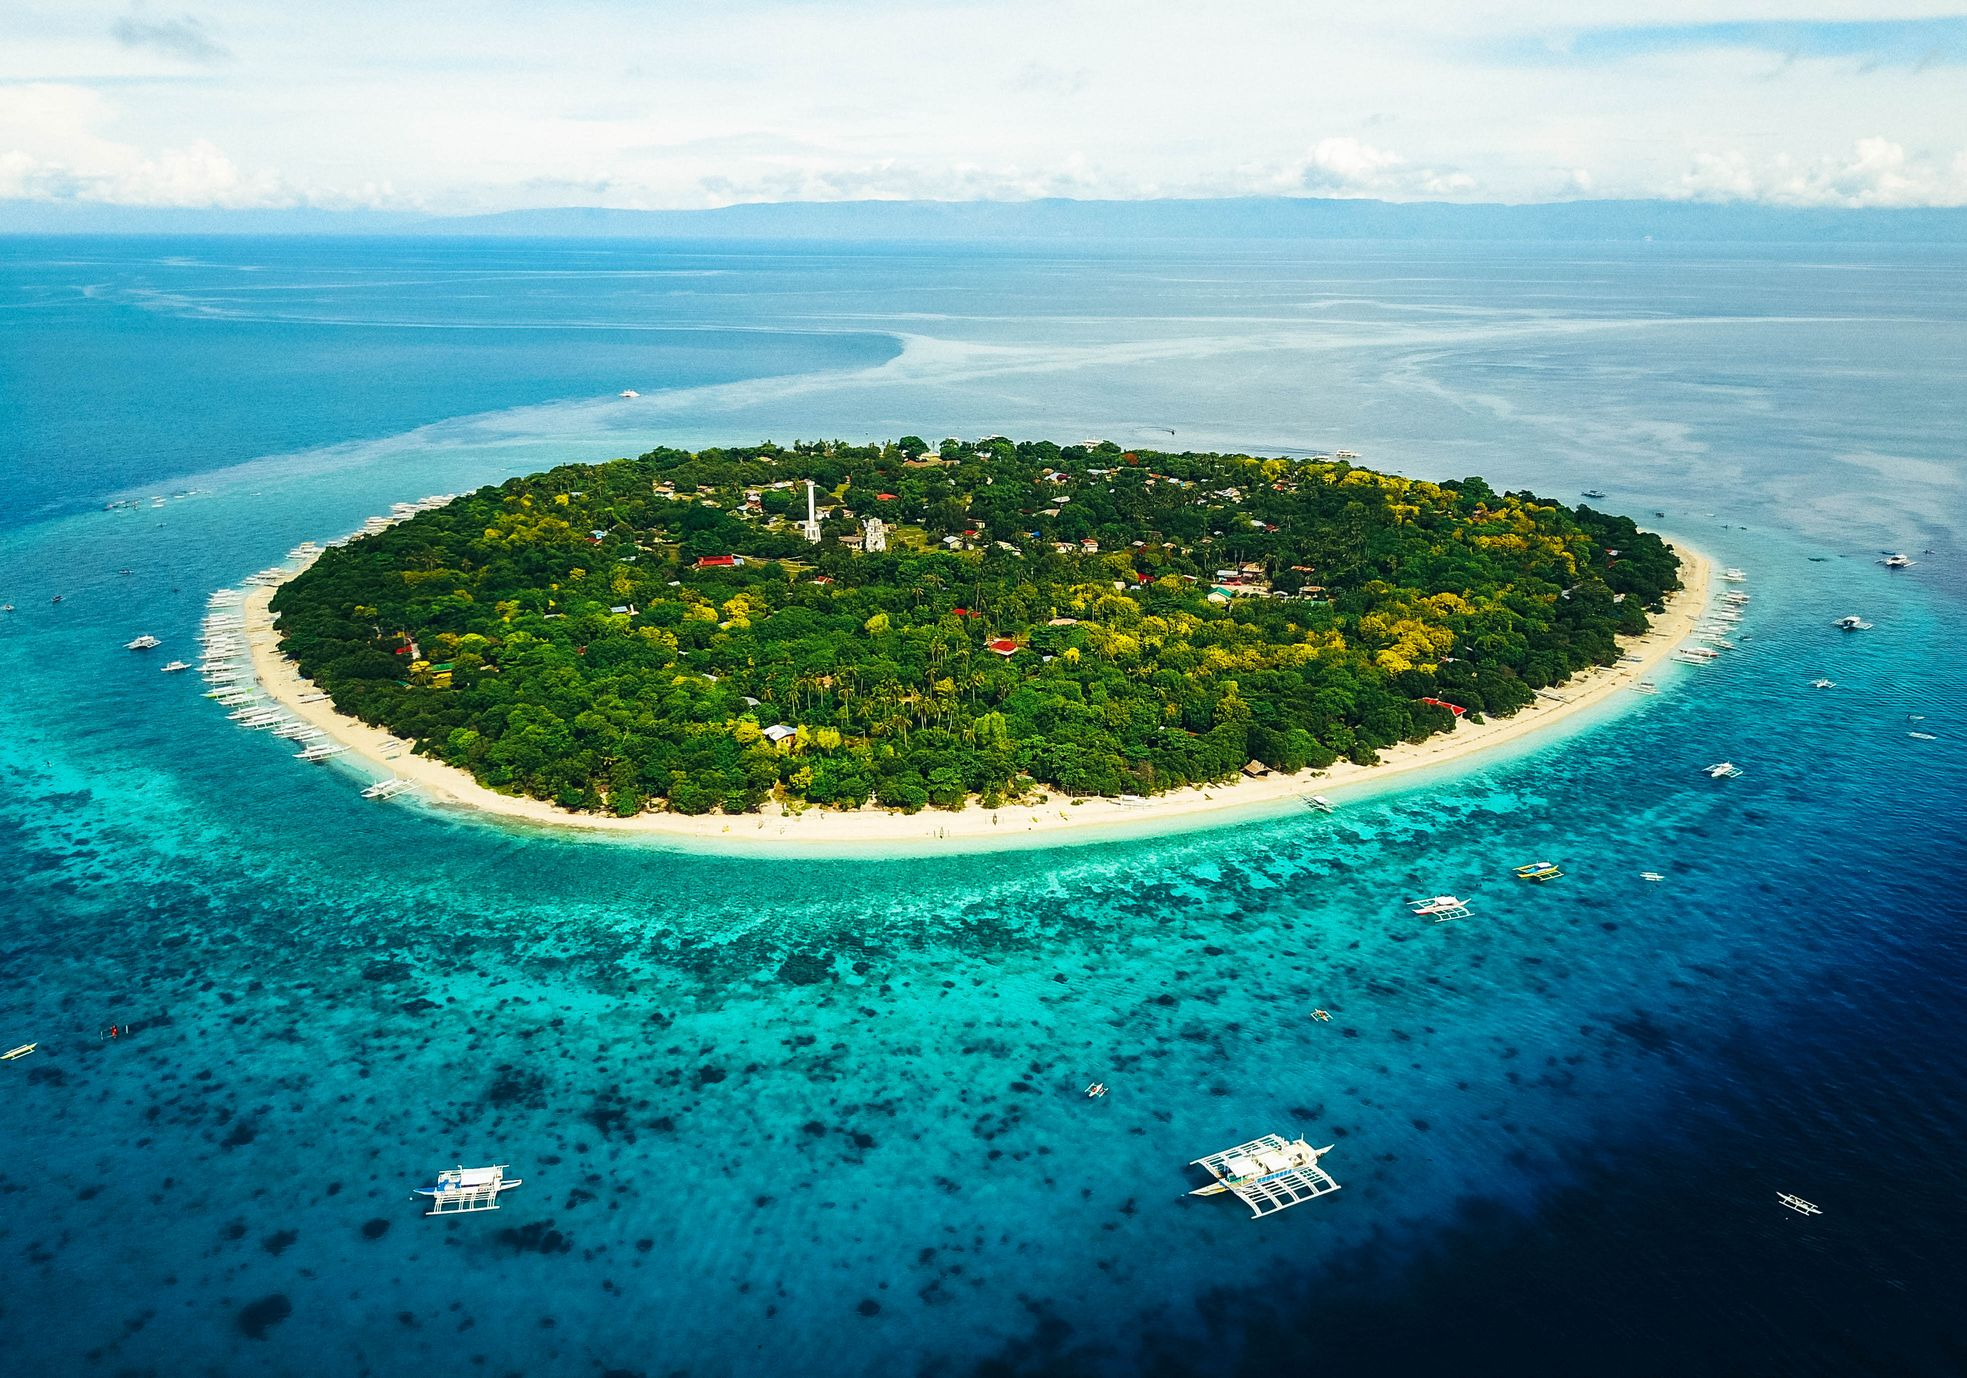 Aerial view of an island fringed with a white sandy shoreline with a coconut palm forest in the middle amidst blue and turquoise waters in Panglao, Philippines